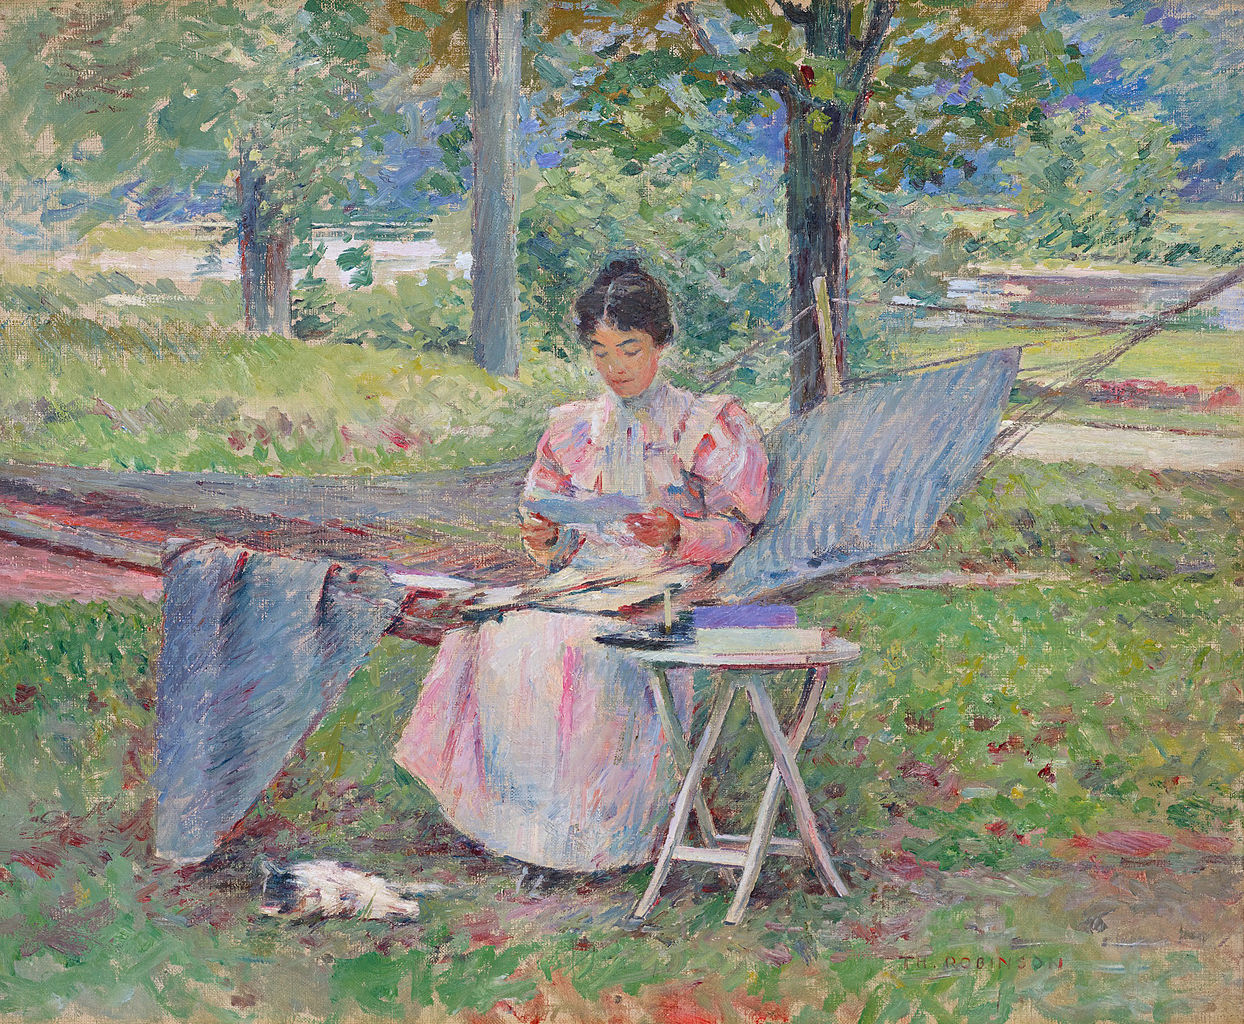 Correspondence by Theodore Robinson, oil on canvas, 18 by 22 inches (45.7 by 55.9 cm), 1895